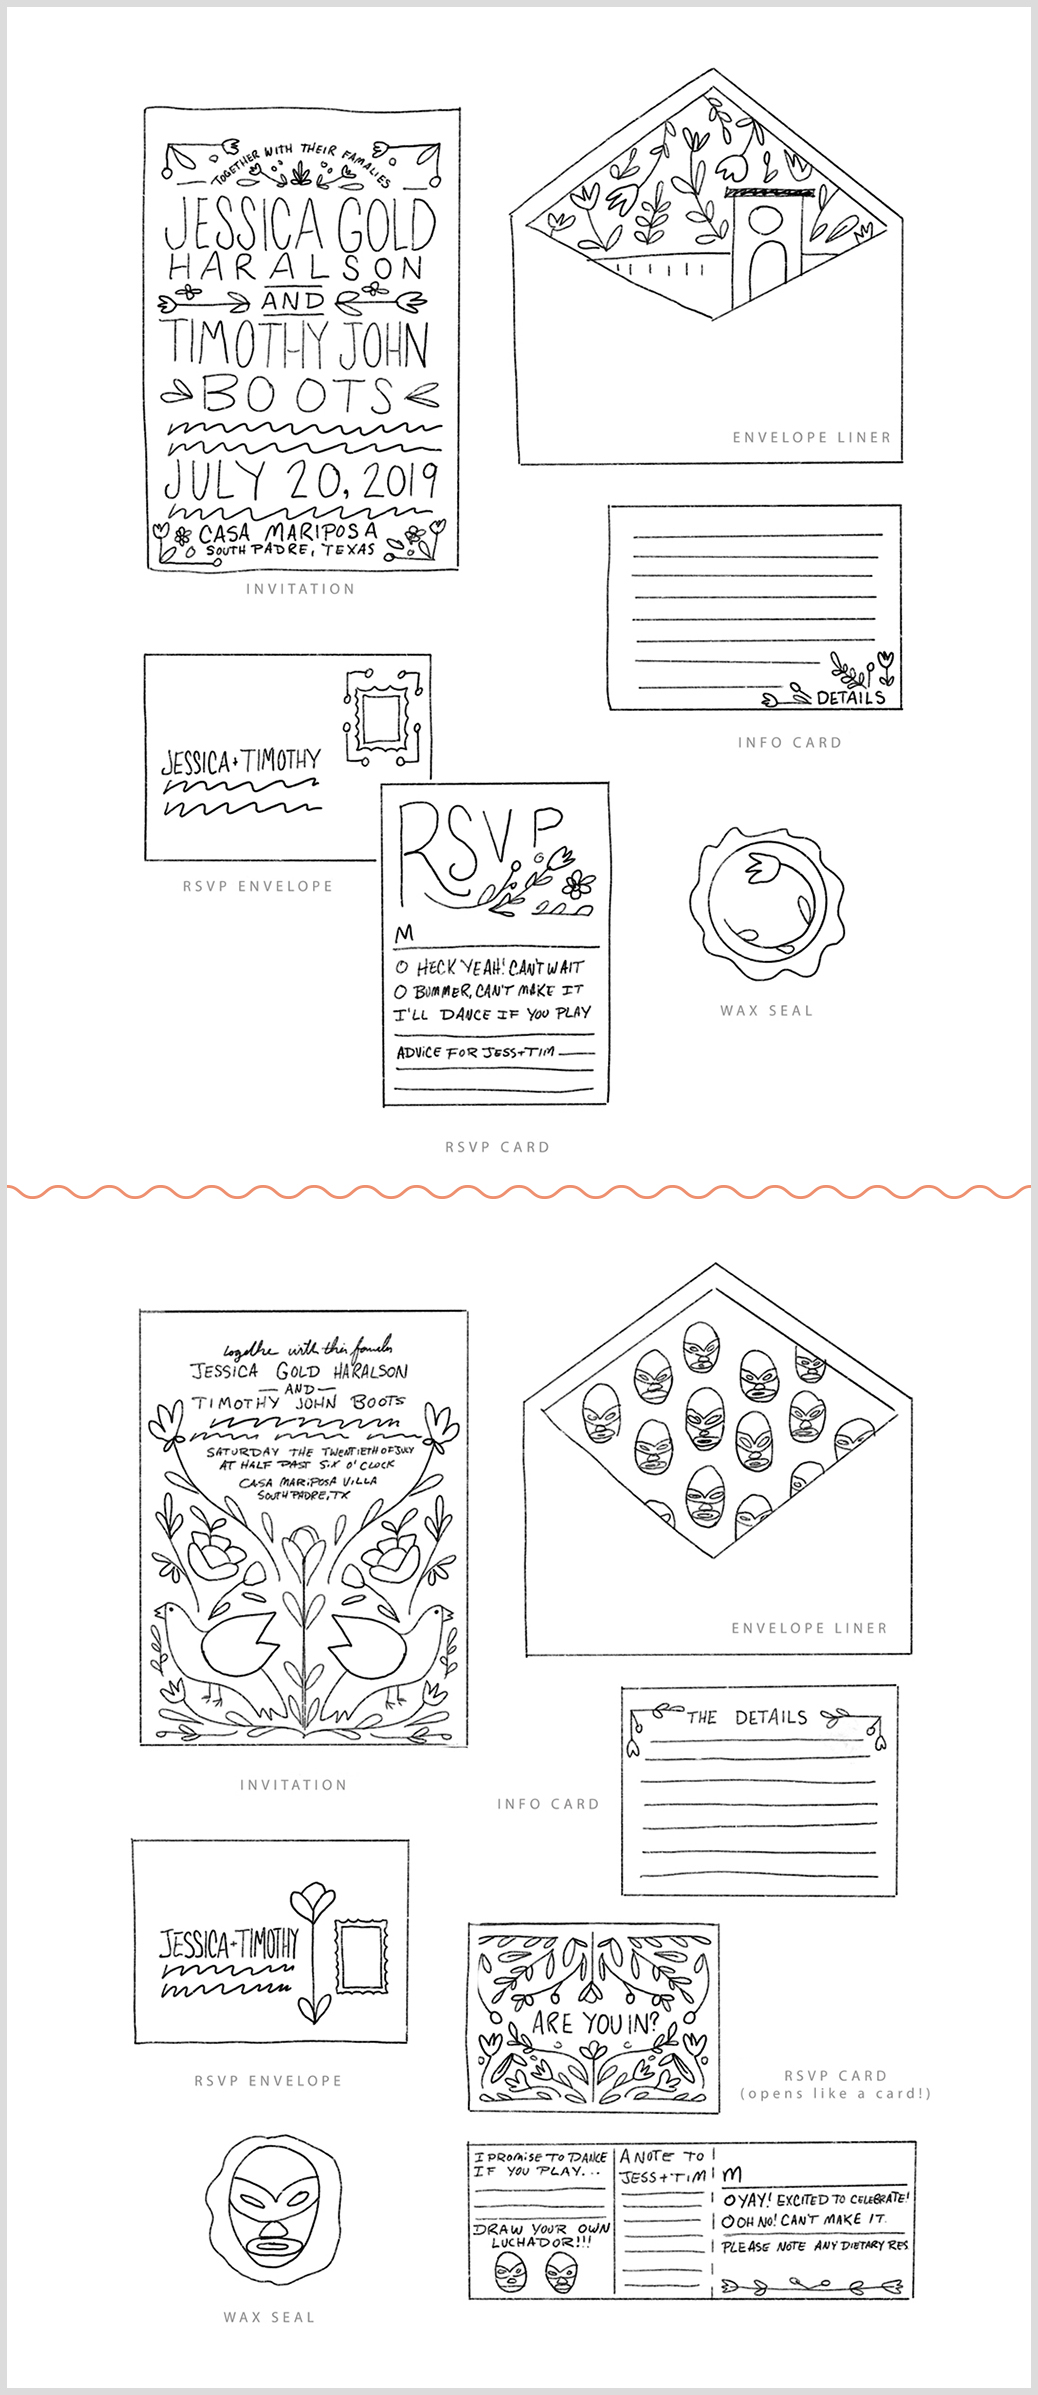 Design sketches for the custom wedding invitation designs, from a custom stationery designer and illustrator